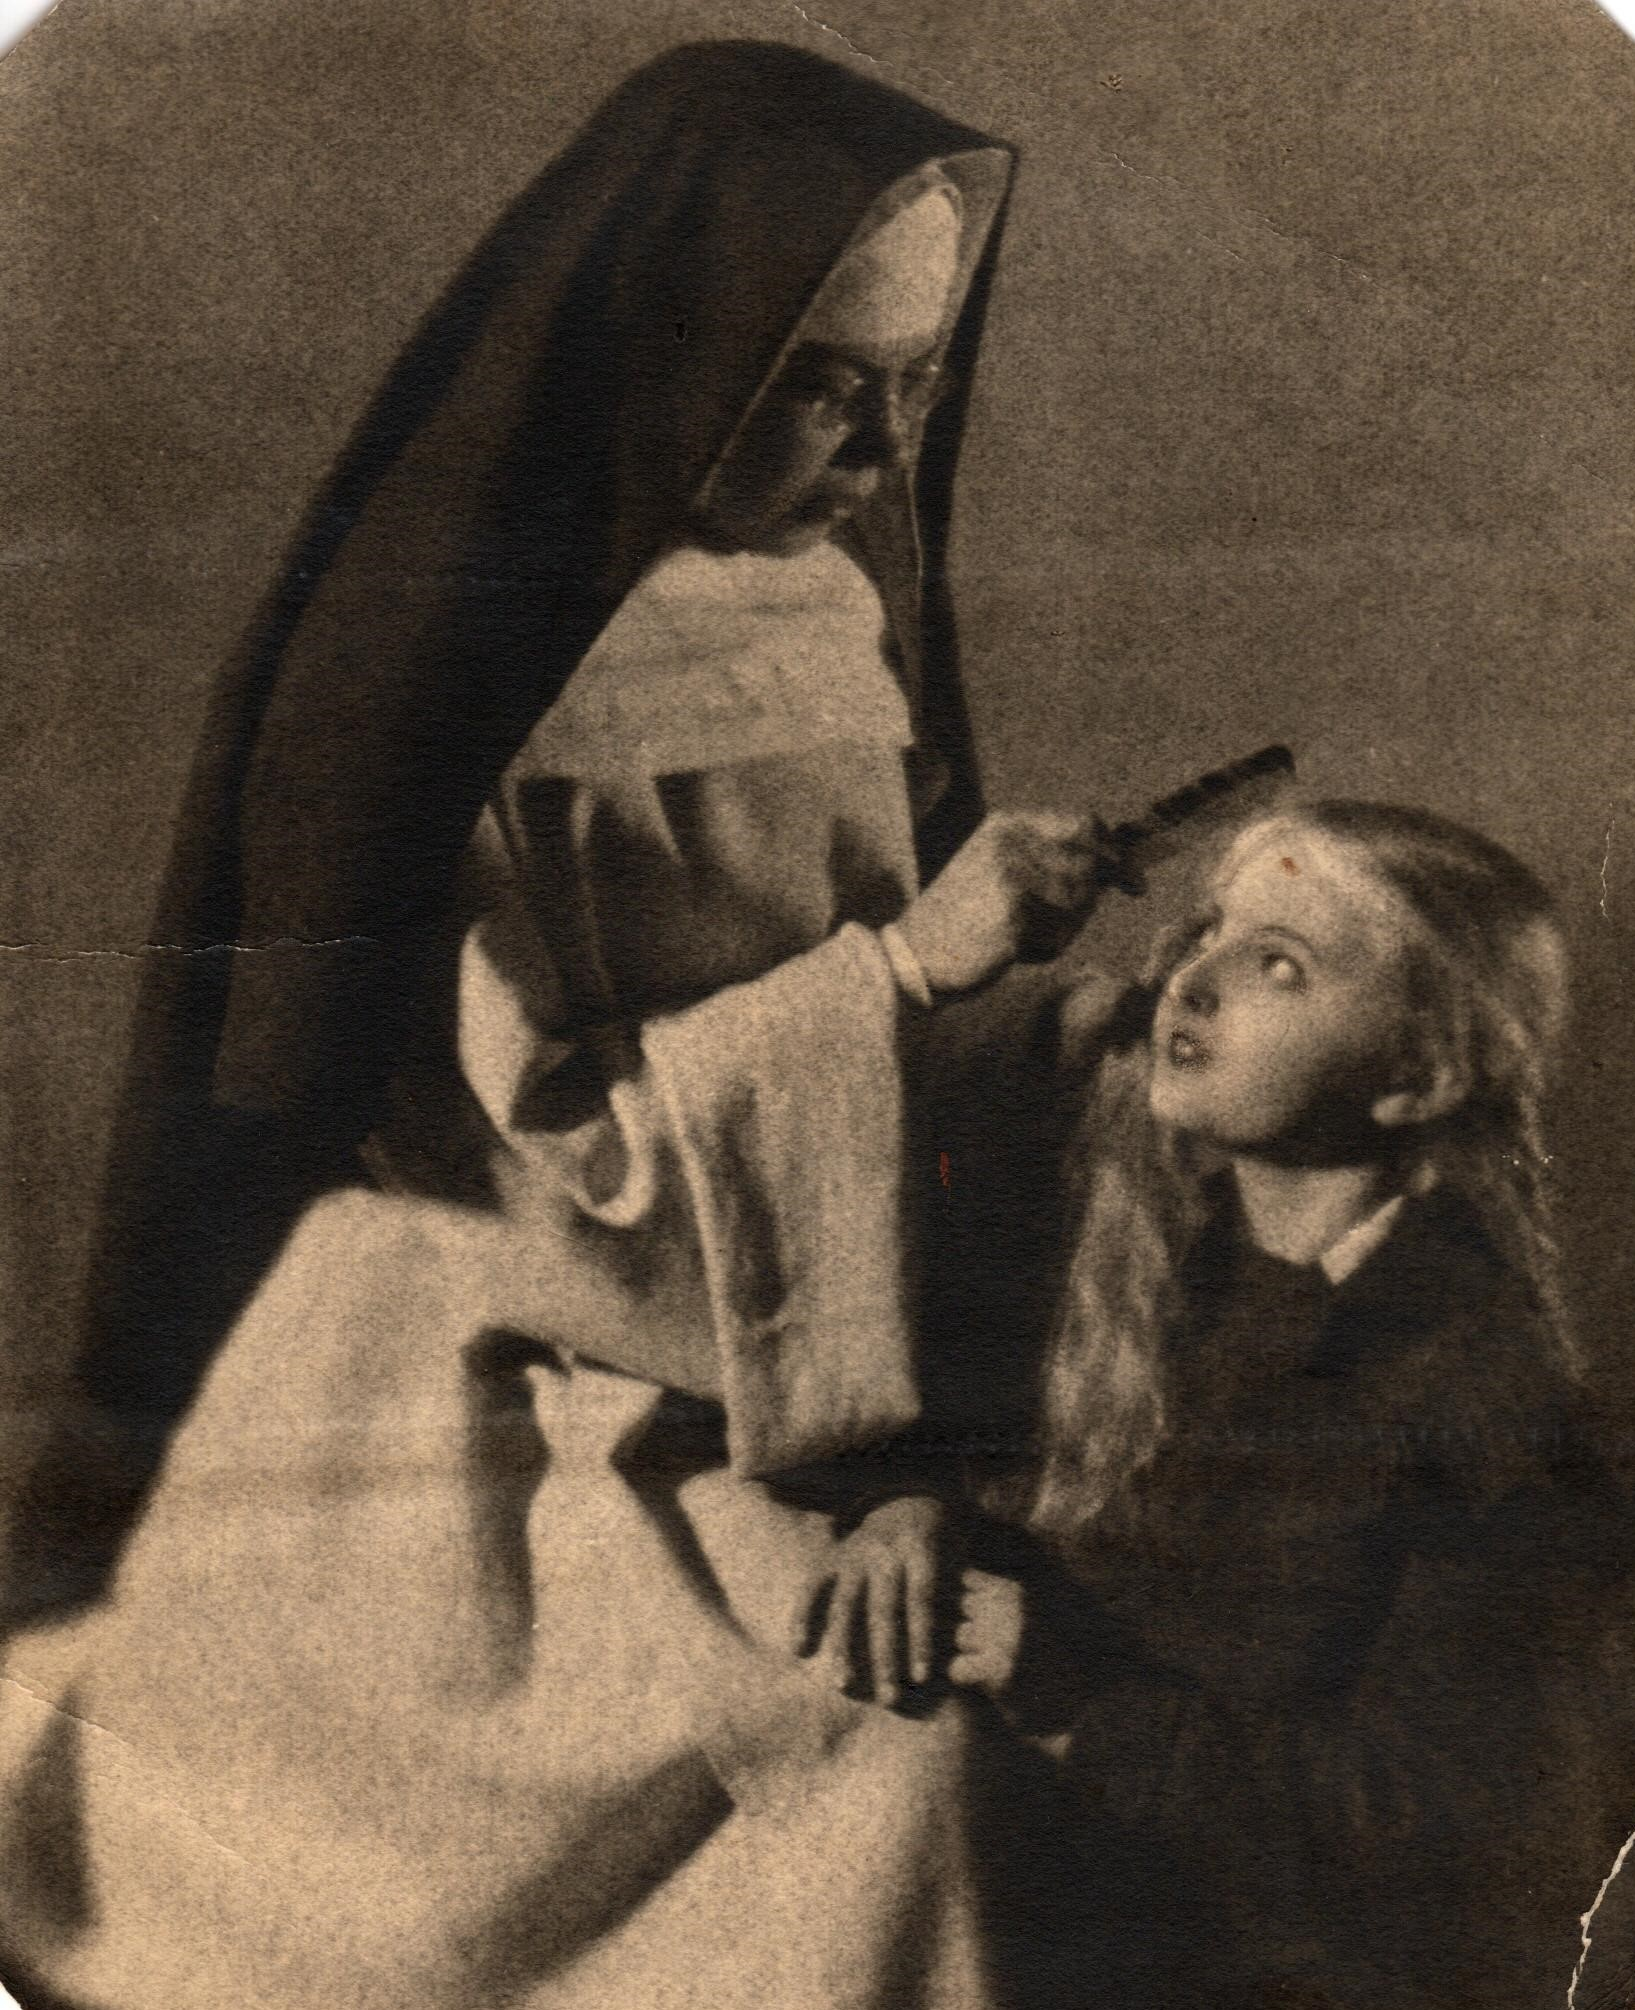 A fellow religious Sister of Blessed Julia who attests to Blessed Julia's sanctity.